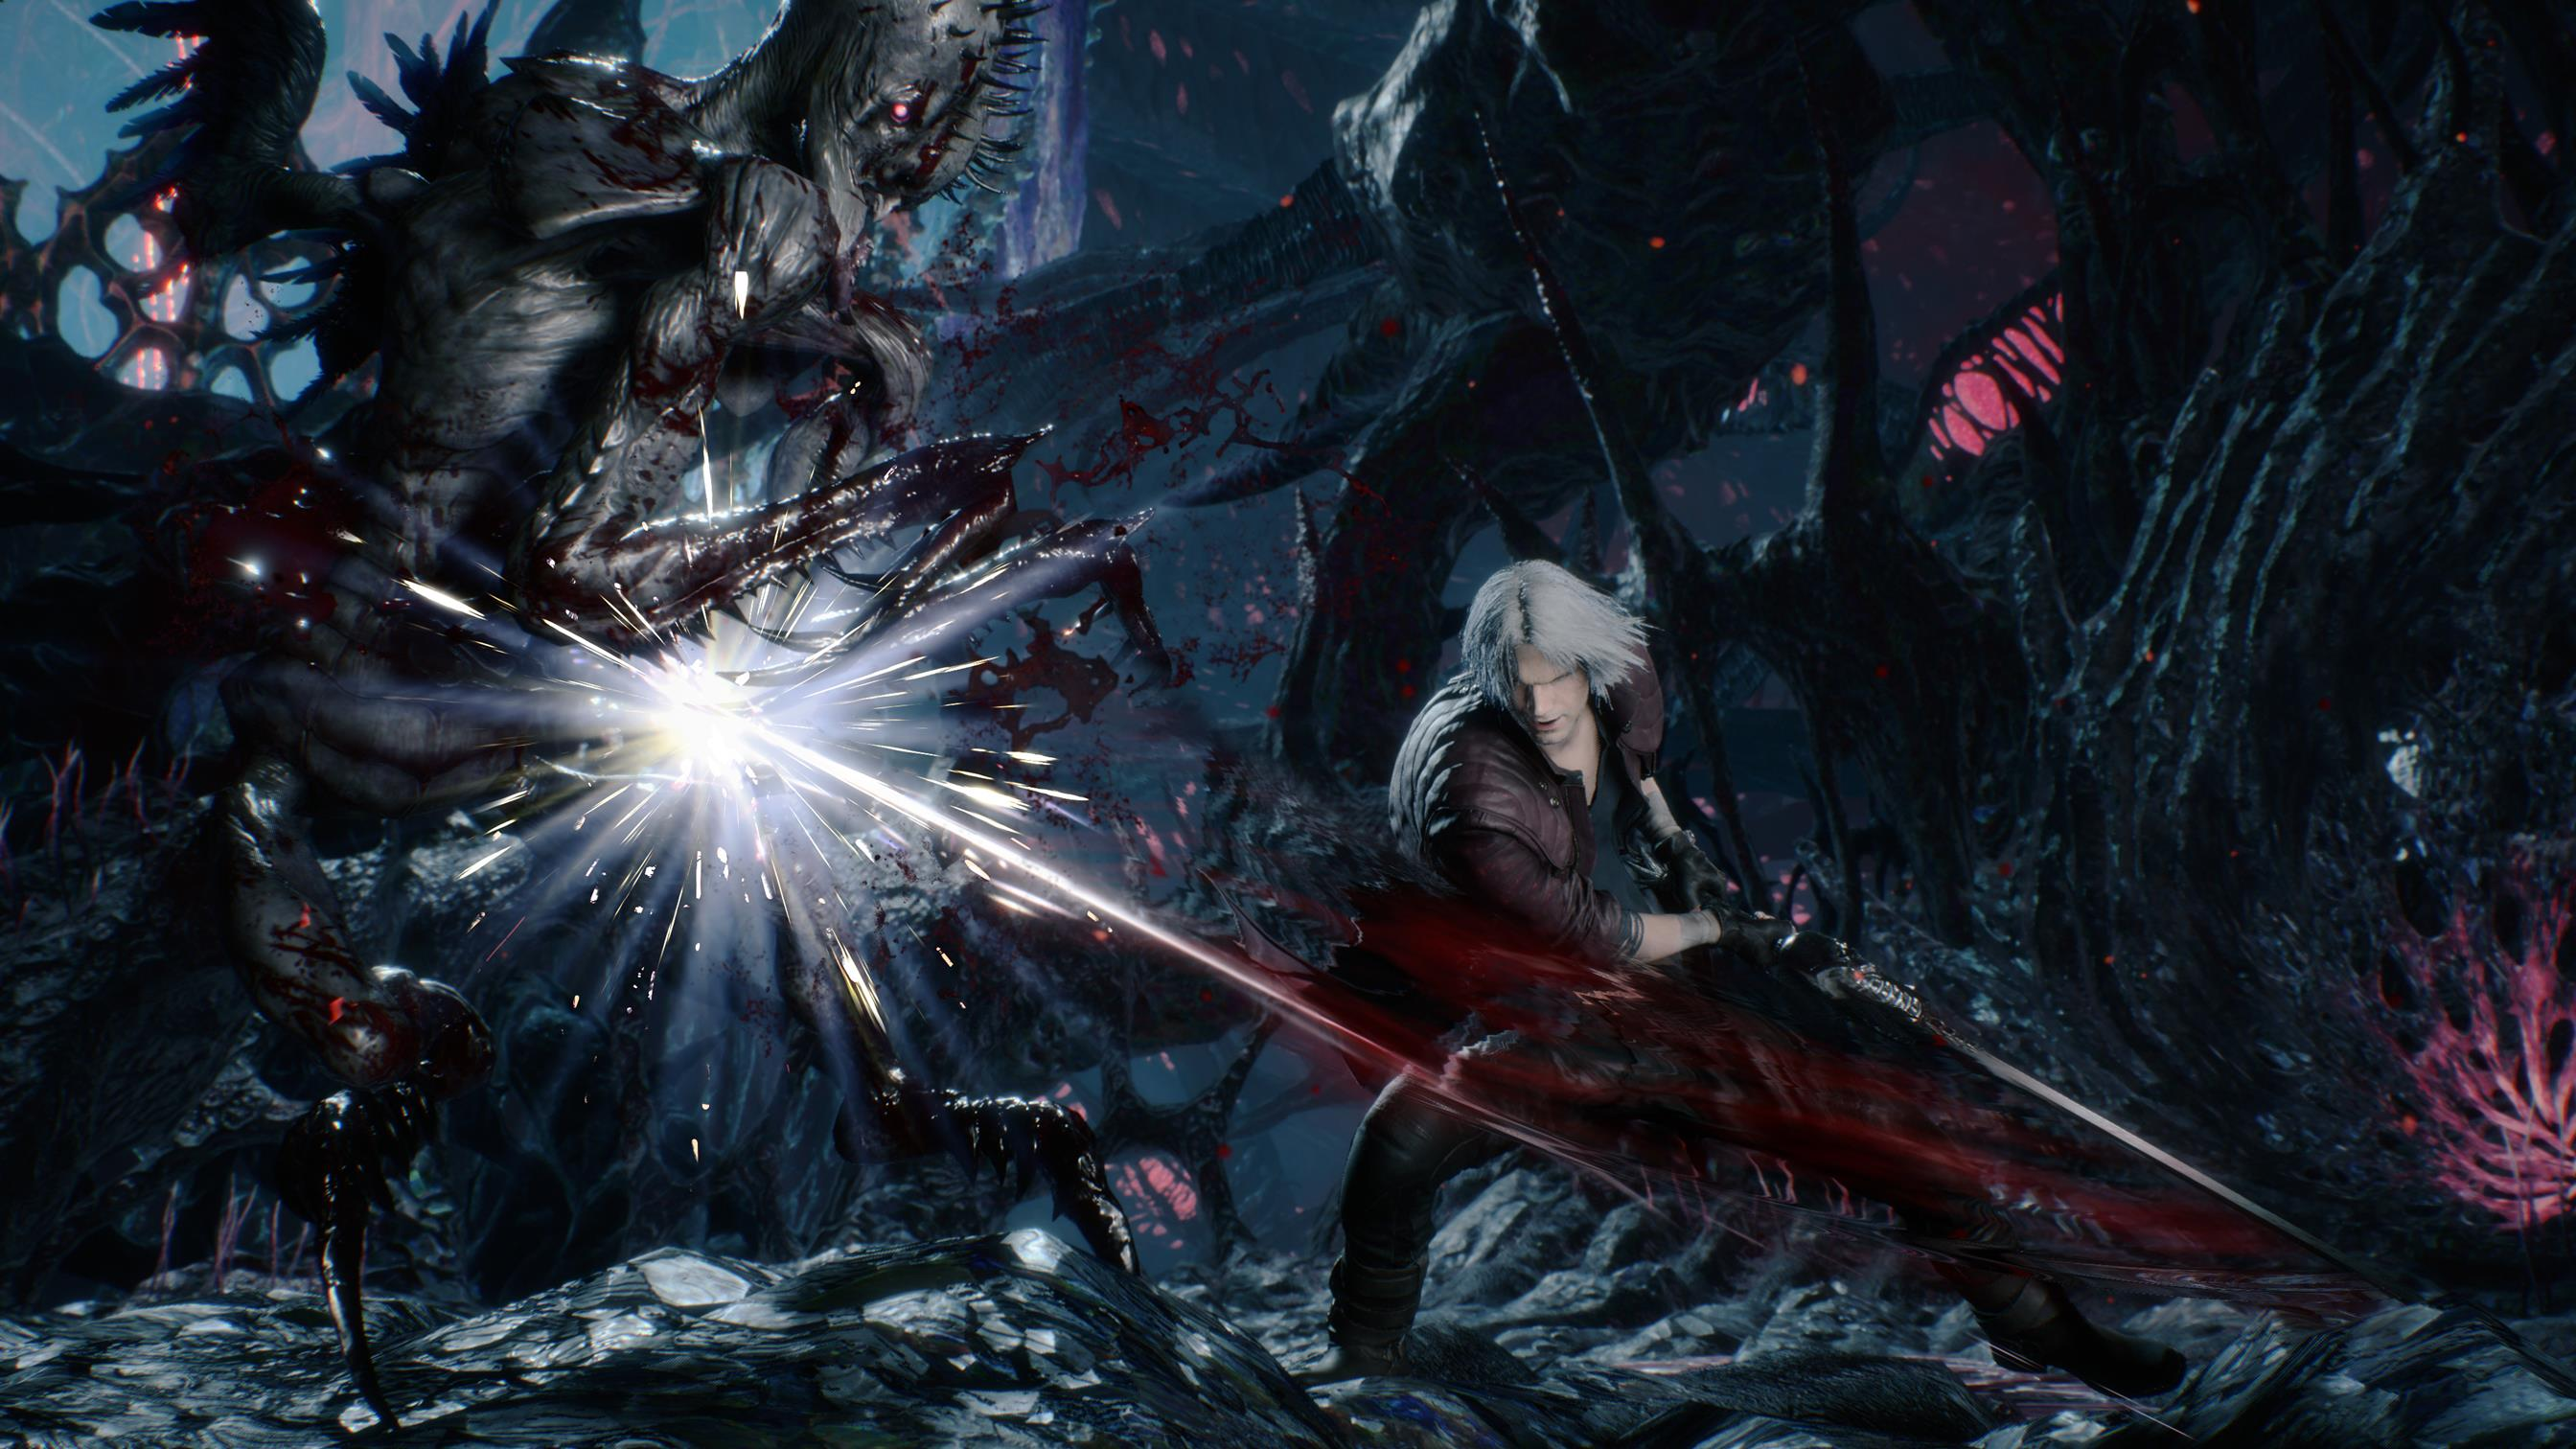 Devil May Cry Dante Wallpaper: Devil May Cry 5 TGS 2018 Trailer Is Our First Look At